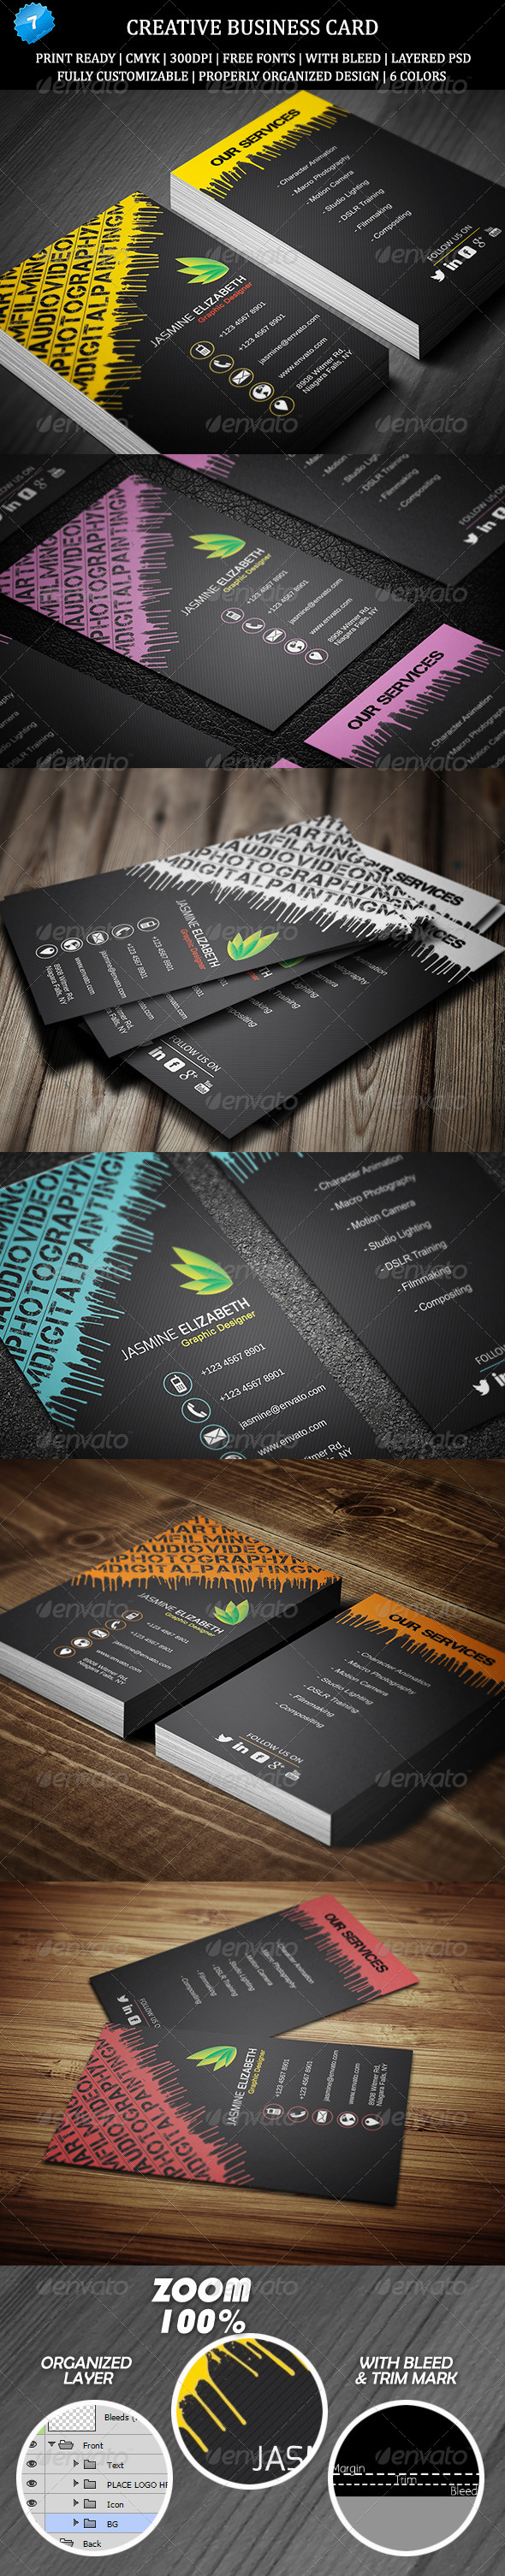 GraphicRiver Creative Business Card 7 6485346